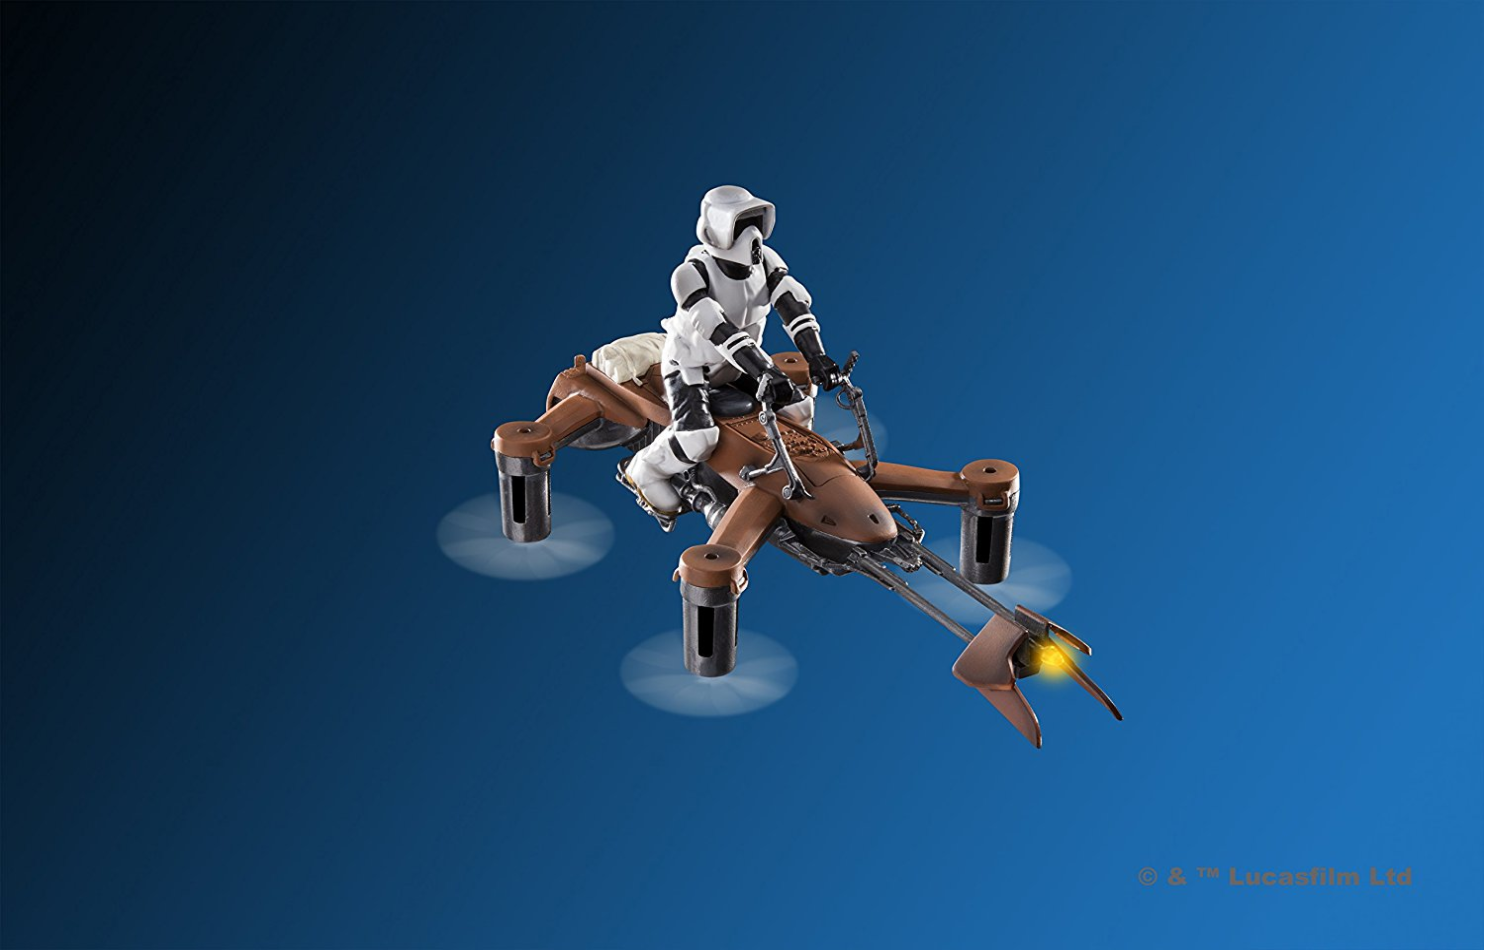 Dron Star Wars - Propel - 74-Z Speeder Bike